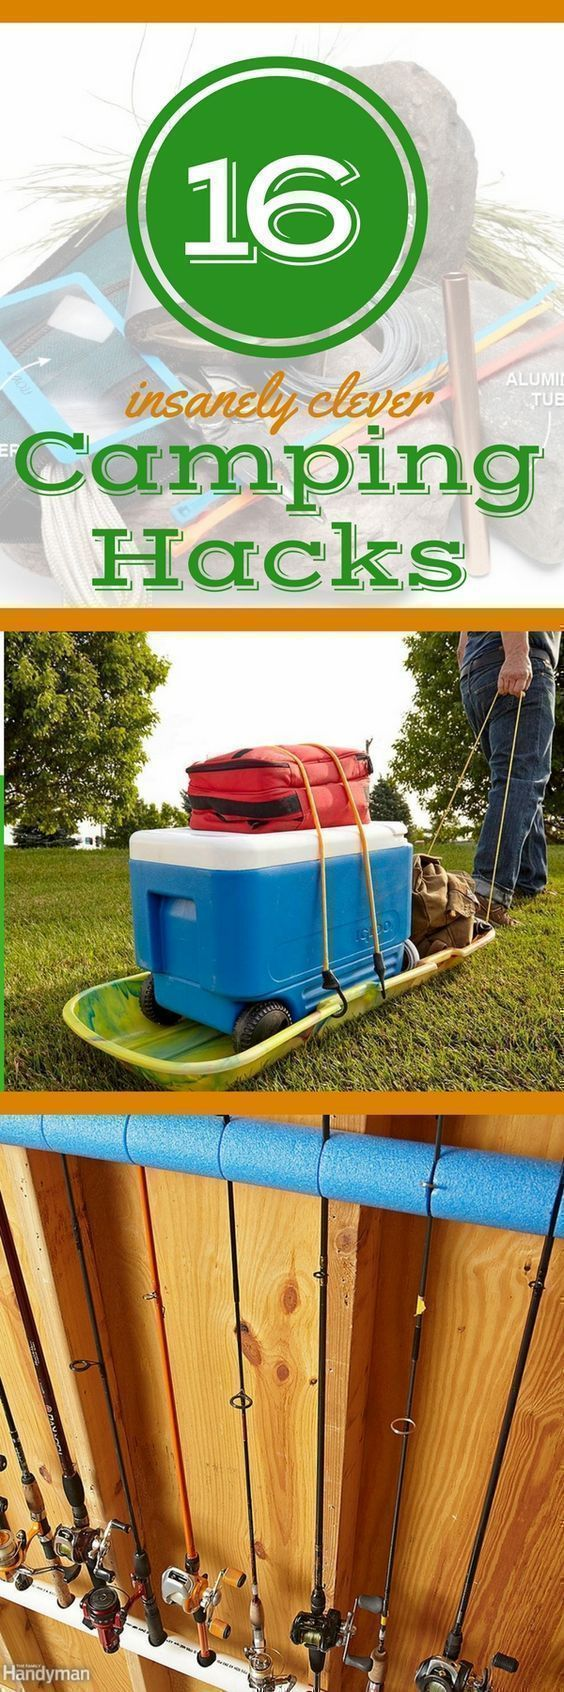 17 Camping Hacks, Tips, & Tricks You'll Wish You Knew Earlier: Hack your camping trips with these clever camping ideas, tips, and tricks. These fun camping ideas take your outdoor adventures to the next level. Plus: discover storage ideas for camping equipment you'll wish you'd been using all along. #canoehacks #KayakStorage #campingequipment #campingtricks #campingstorage #campingadventure #campinghacks #campingstorageideas